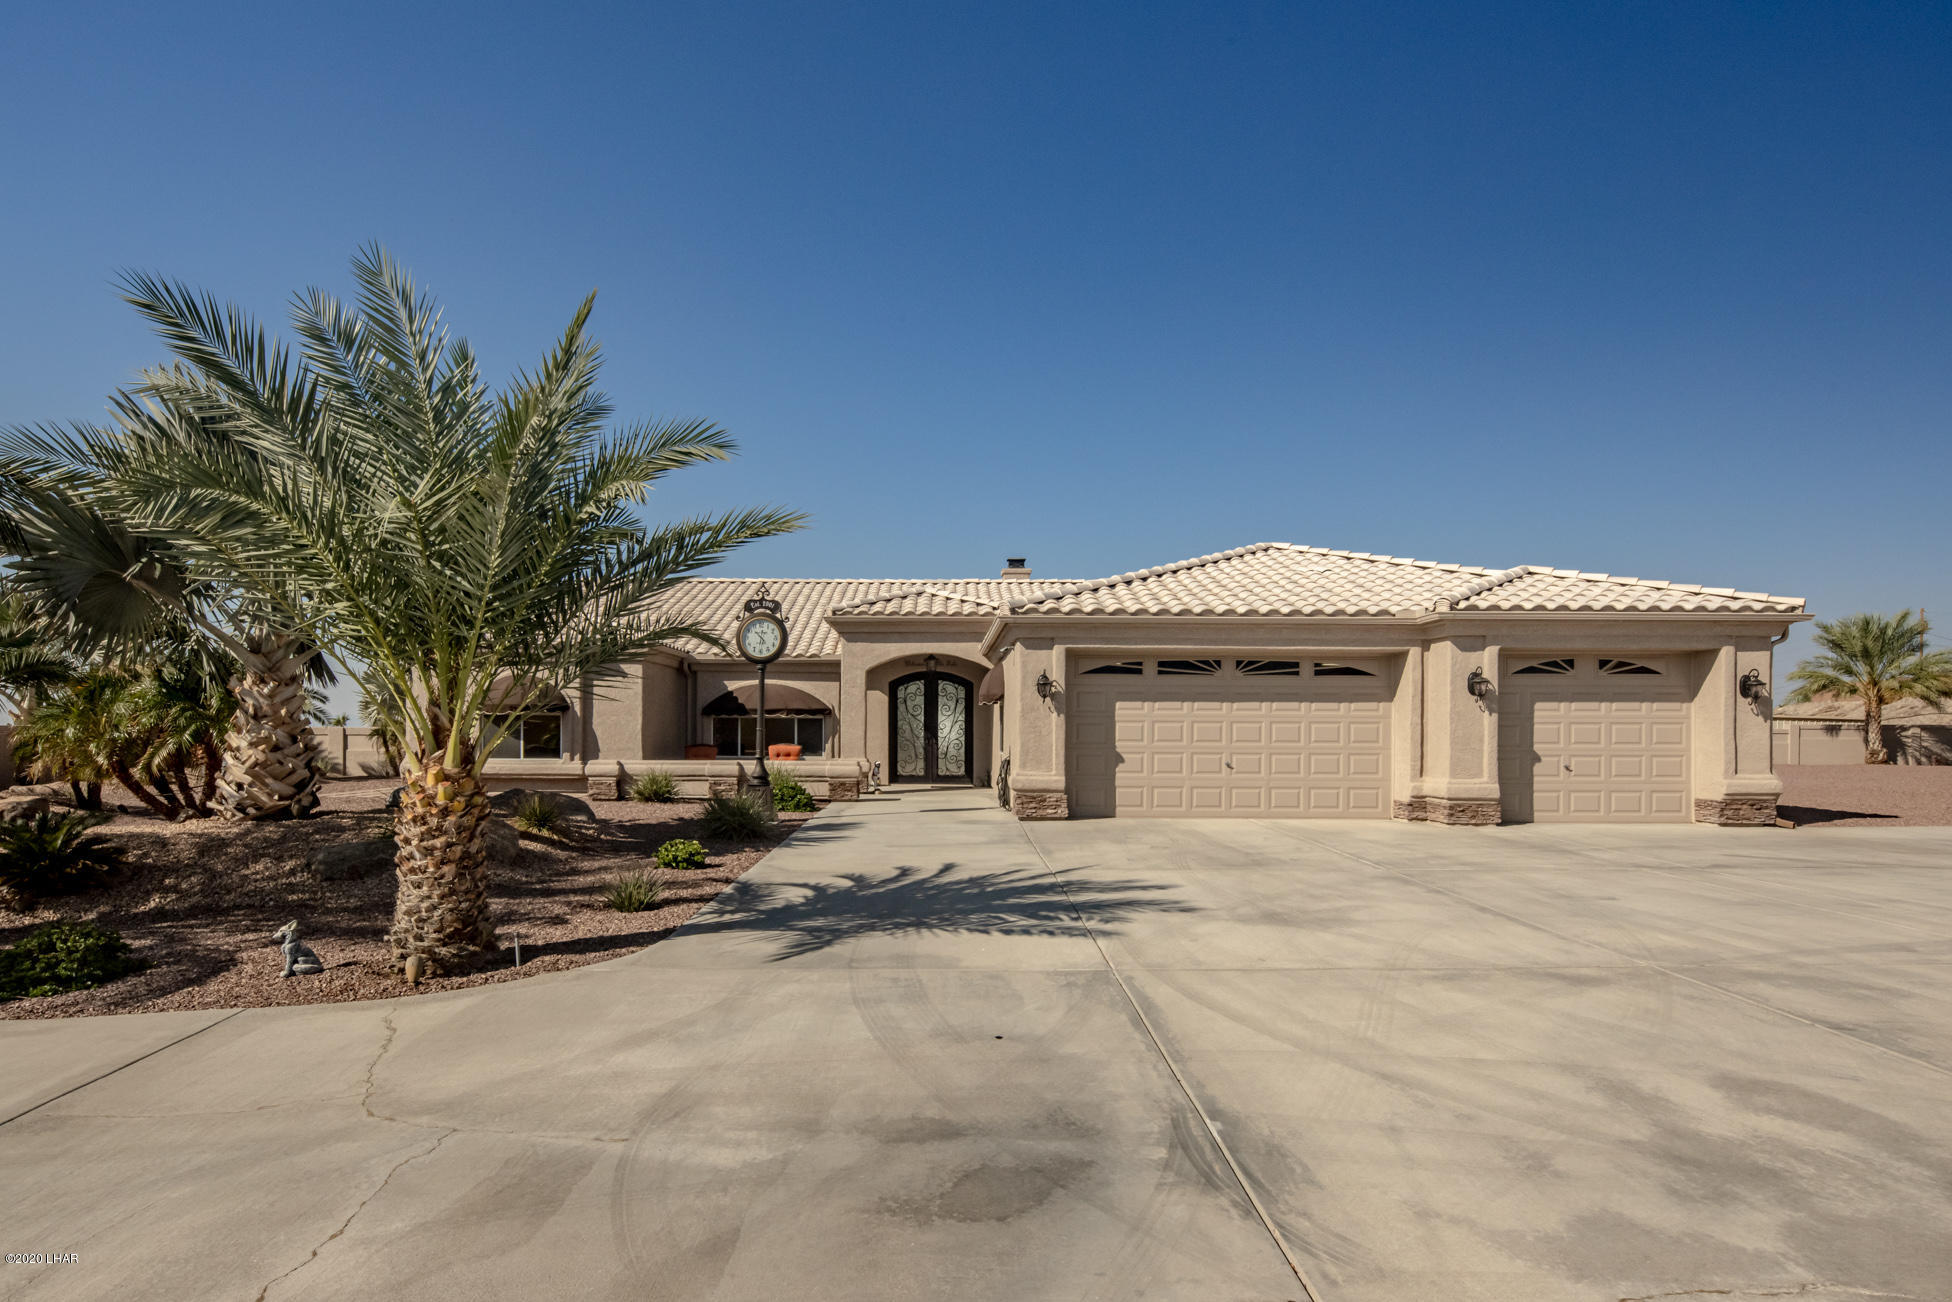 Photo of 3891 Vega Dr, Lake Havasu City, AZ 86404